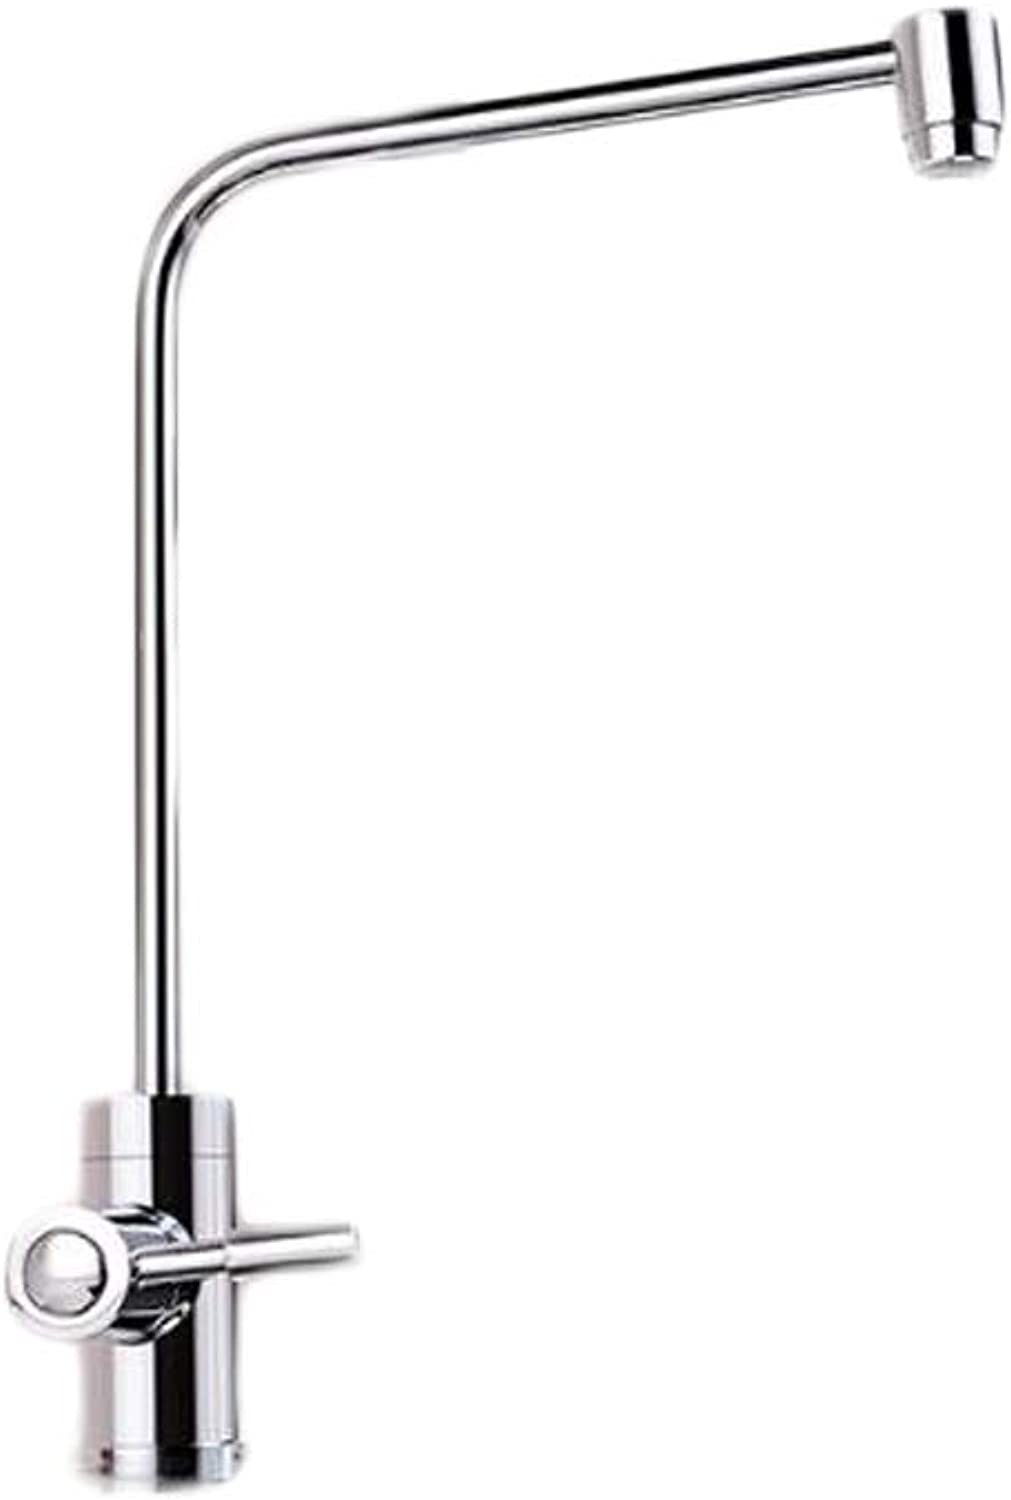 Haoyushangmao 360 Degree Swivel Good Valued Modern Cold Mixer, Stainless Steel Single Handle, Brushed Steel Kitchen Sink Faucet,Easy Inssizetion ,Brushed Kitchen Faucets The latest style, durable